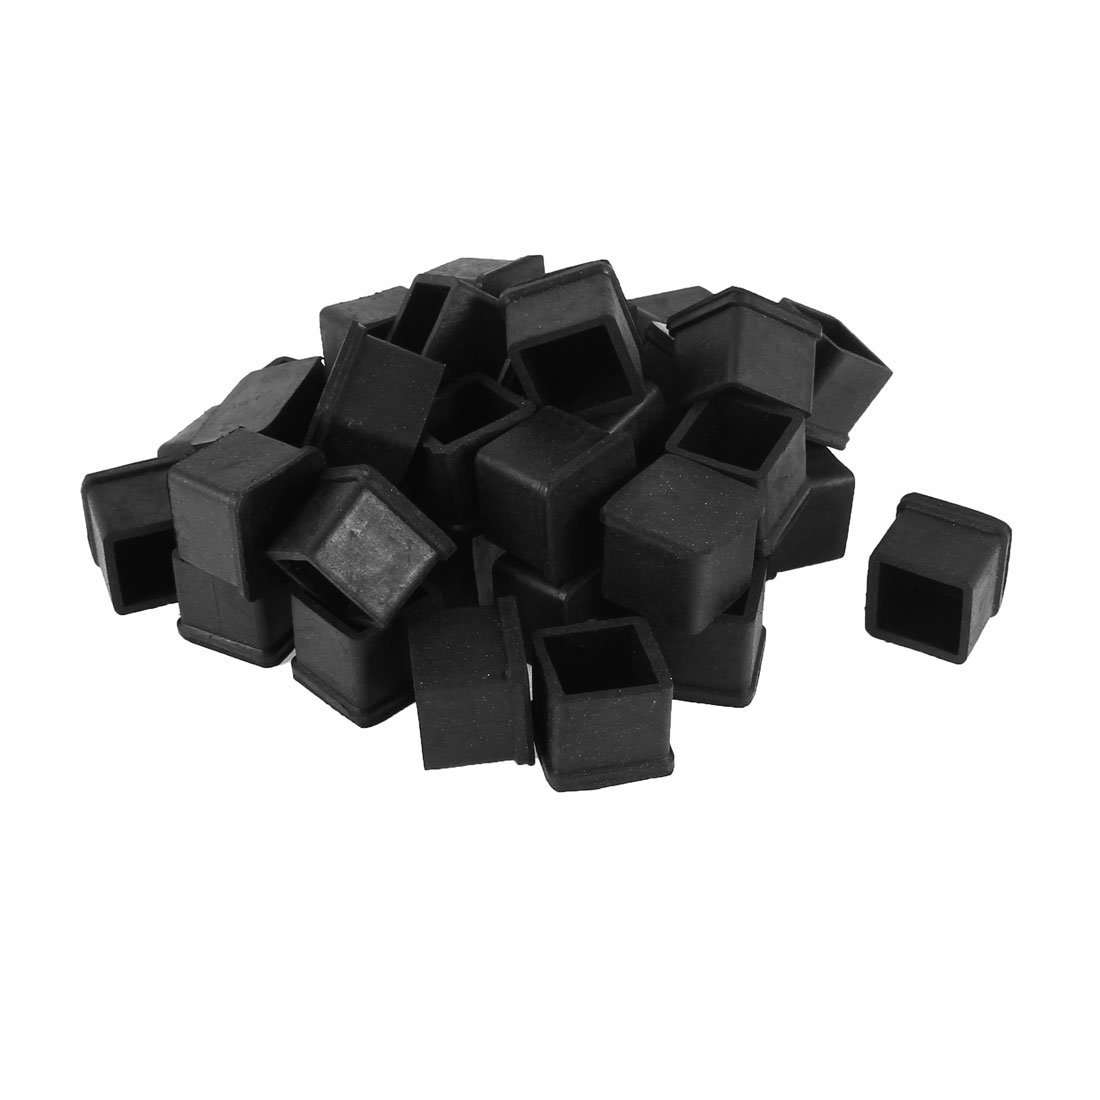 SZS Hot 40 Pcs Rubber Chair Table Foot Cover Furniture Leg Protectors 20x20mmSZS Hot 40 Pcs Rubber Chair Table Foot Cover Furniture Leg Protectors 20x20mm